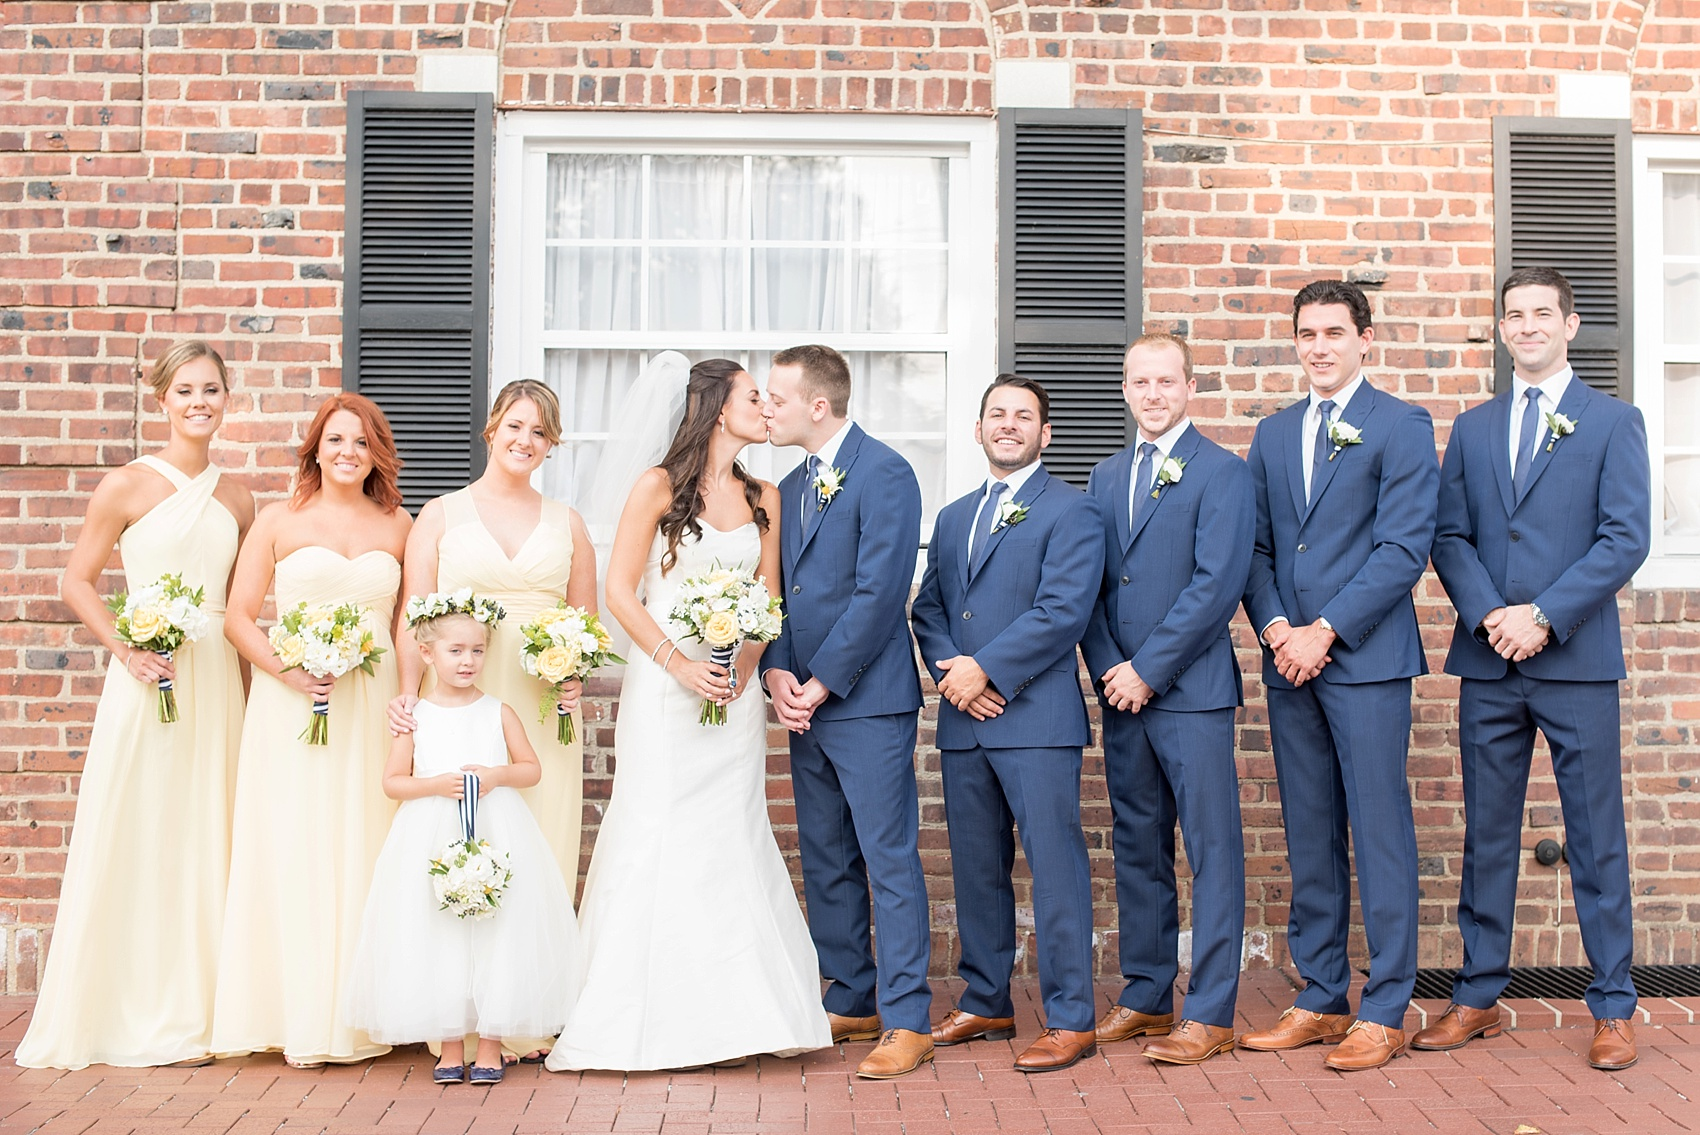 Wedding Party In Navy Blue Suits And Yellow Chiffon Dresses For The Groomsmen Bridesmaids